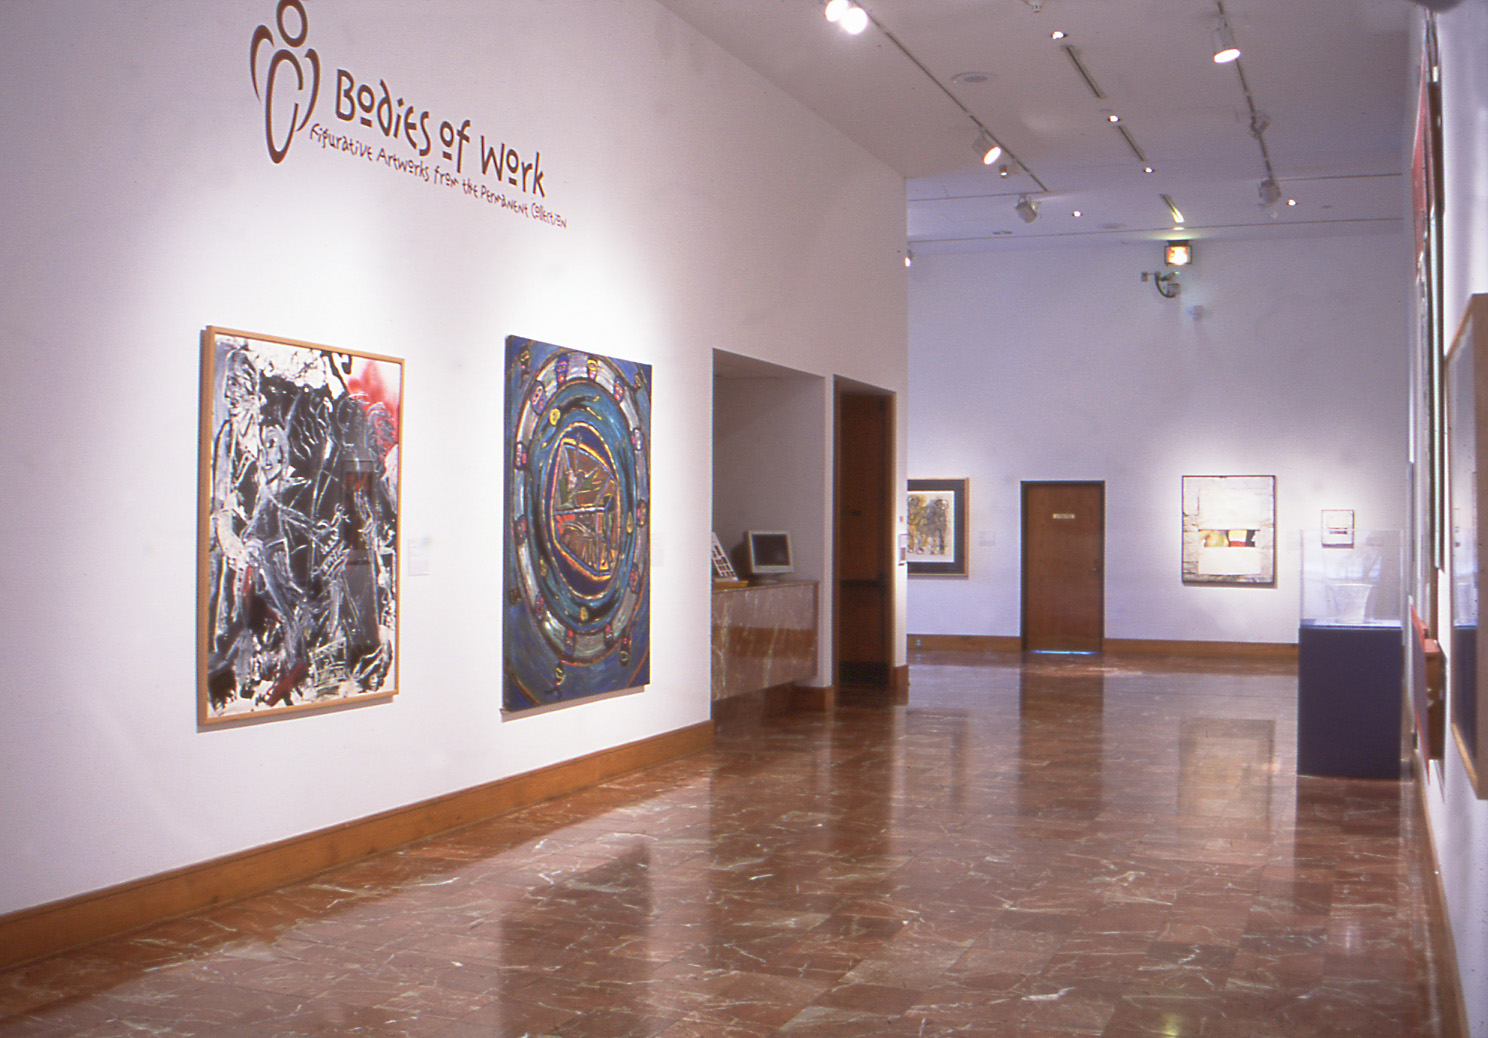 Bodies of Work: Figurative Artworks From the Permanent Collection, 2002.